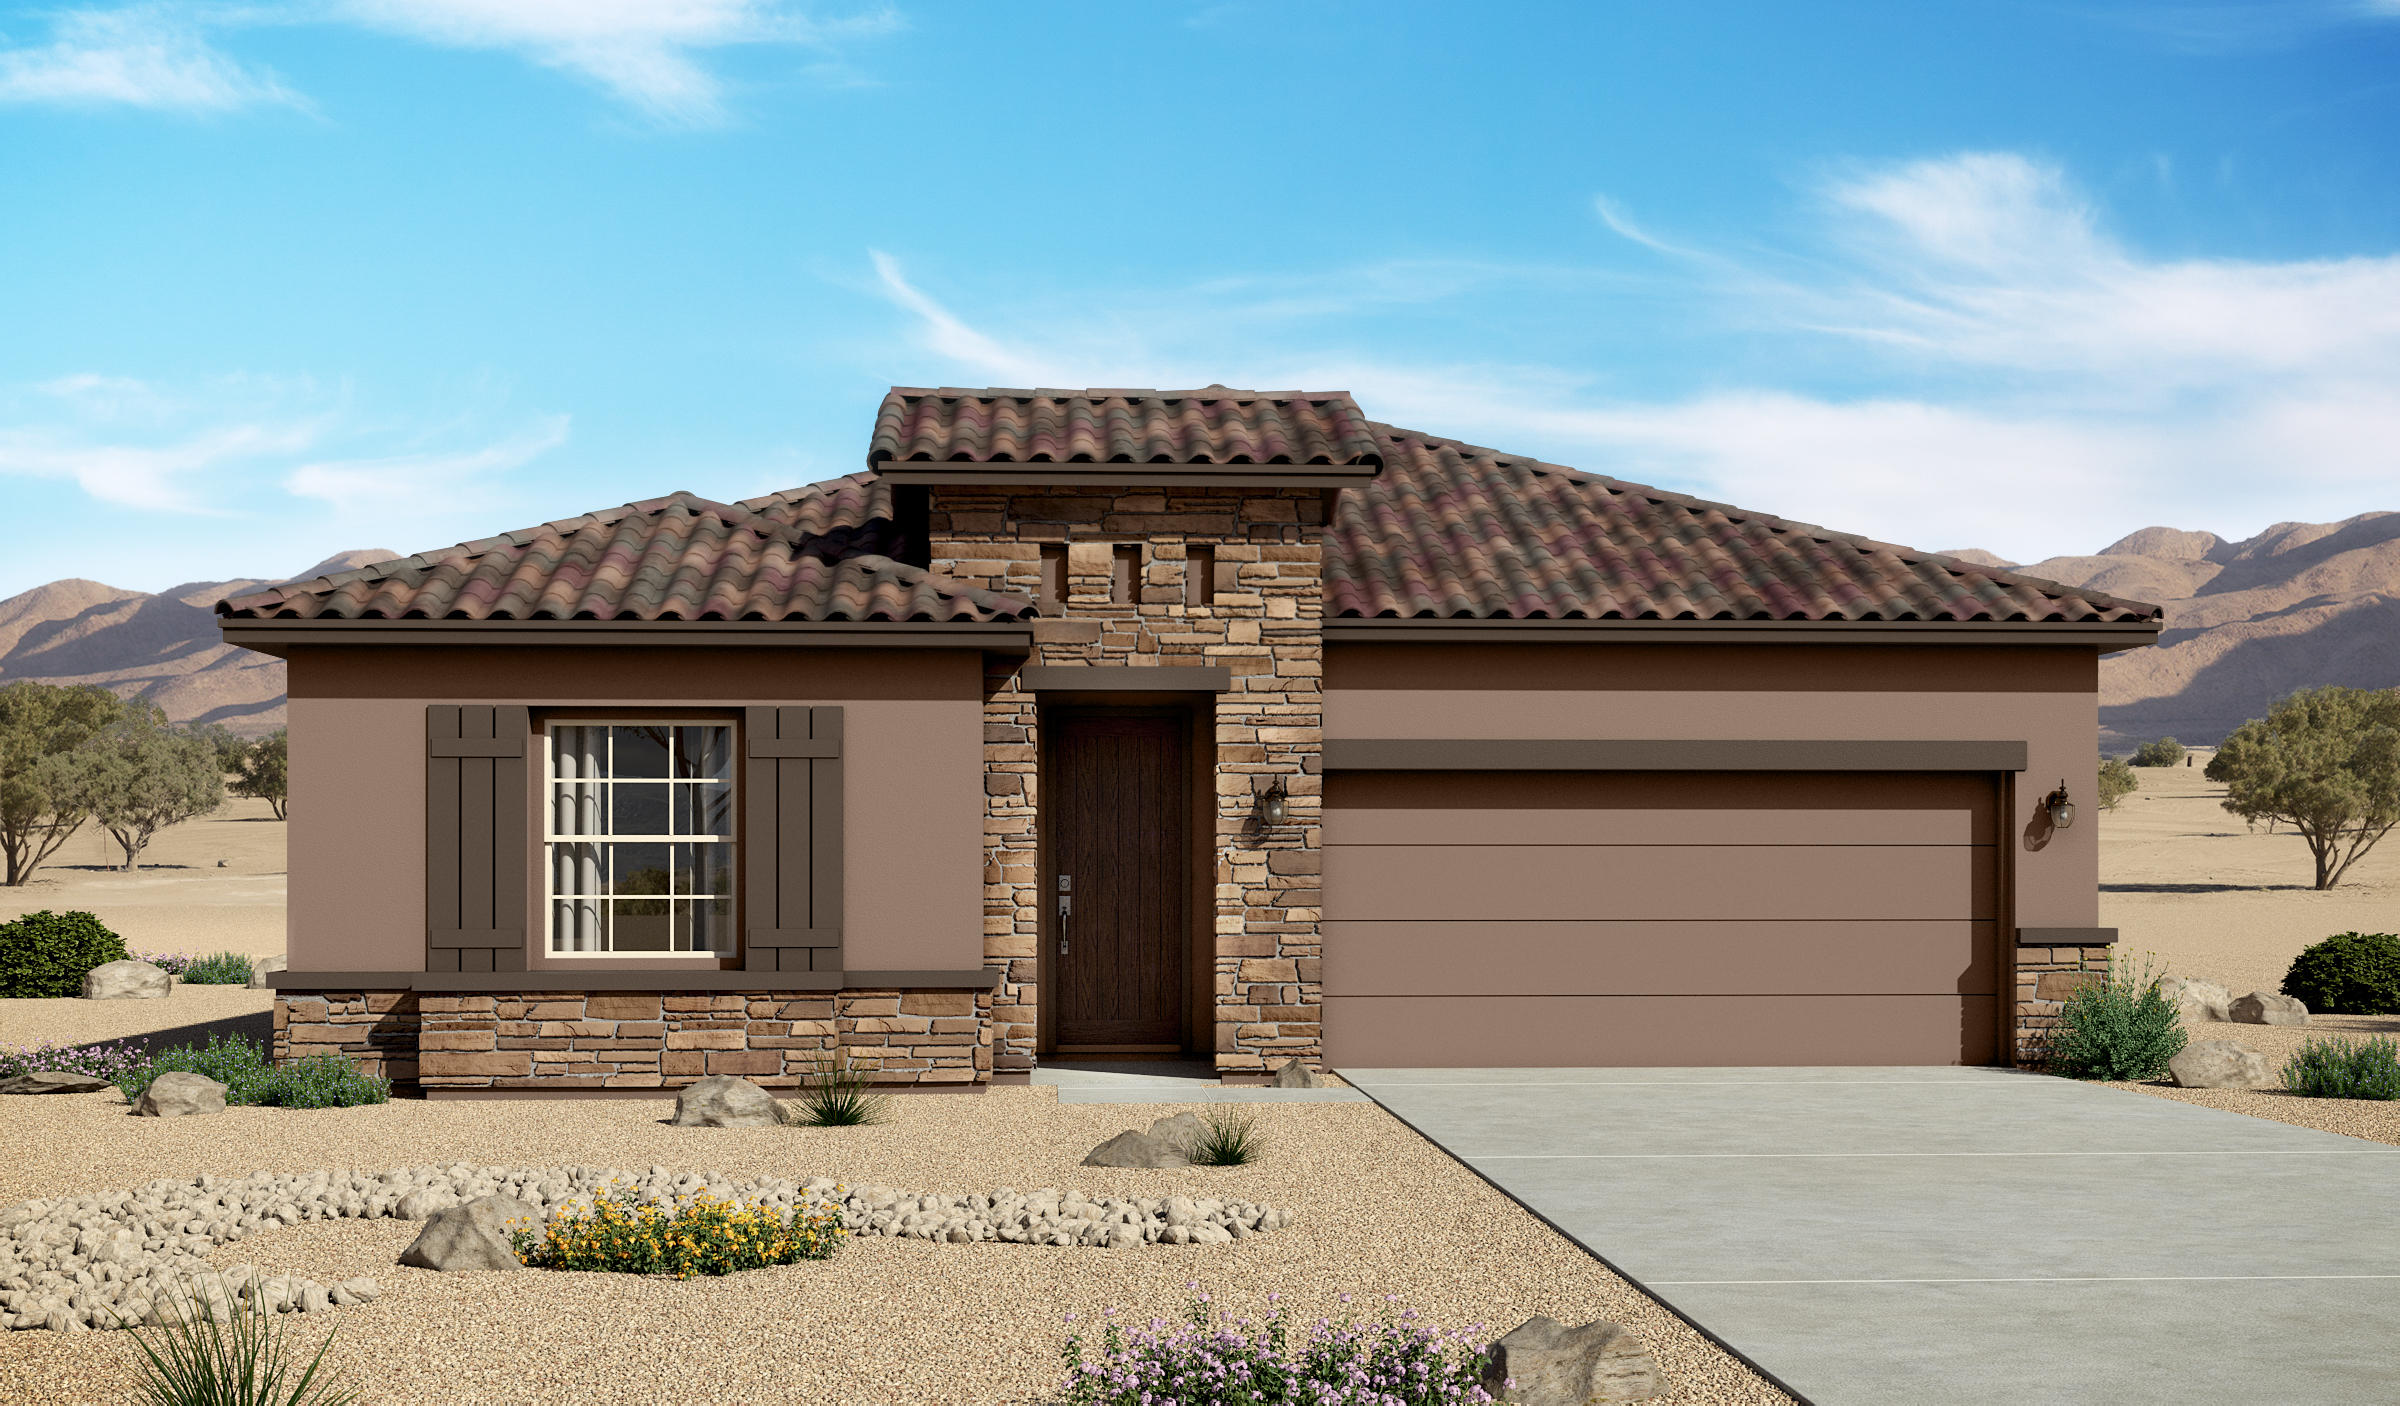 Estimated Completion Date: 07/27/2020Features:  Gourmet Kitchen, Farm Sink, 8' Doors, Pendant Lights, Granite Kitchen countertops, Master shower body sprayers, Emser Wall tiles, Wood look floor tile, and Decorative kitchen backsplash